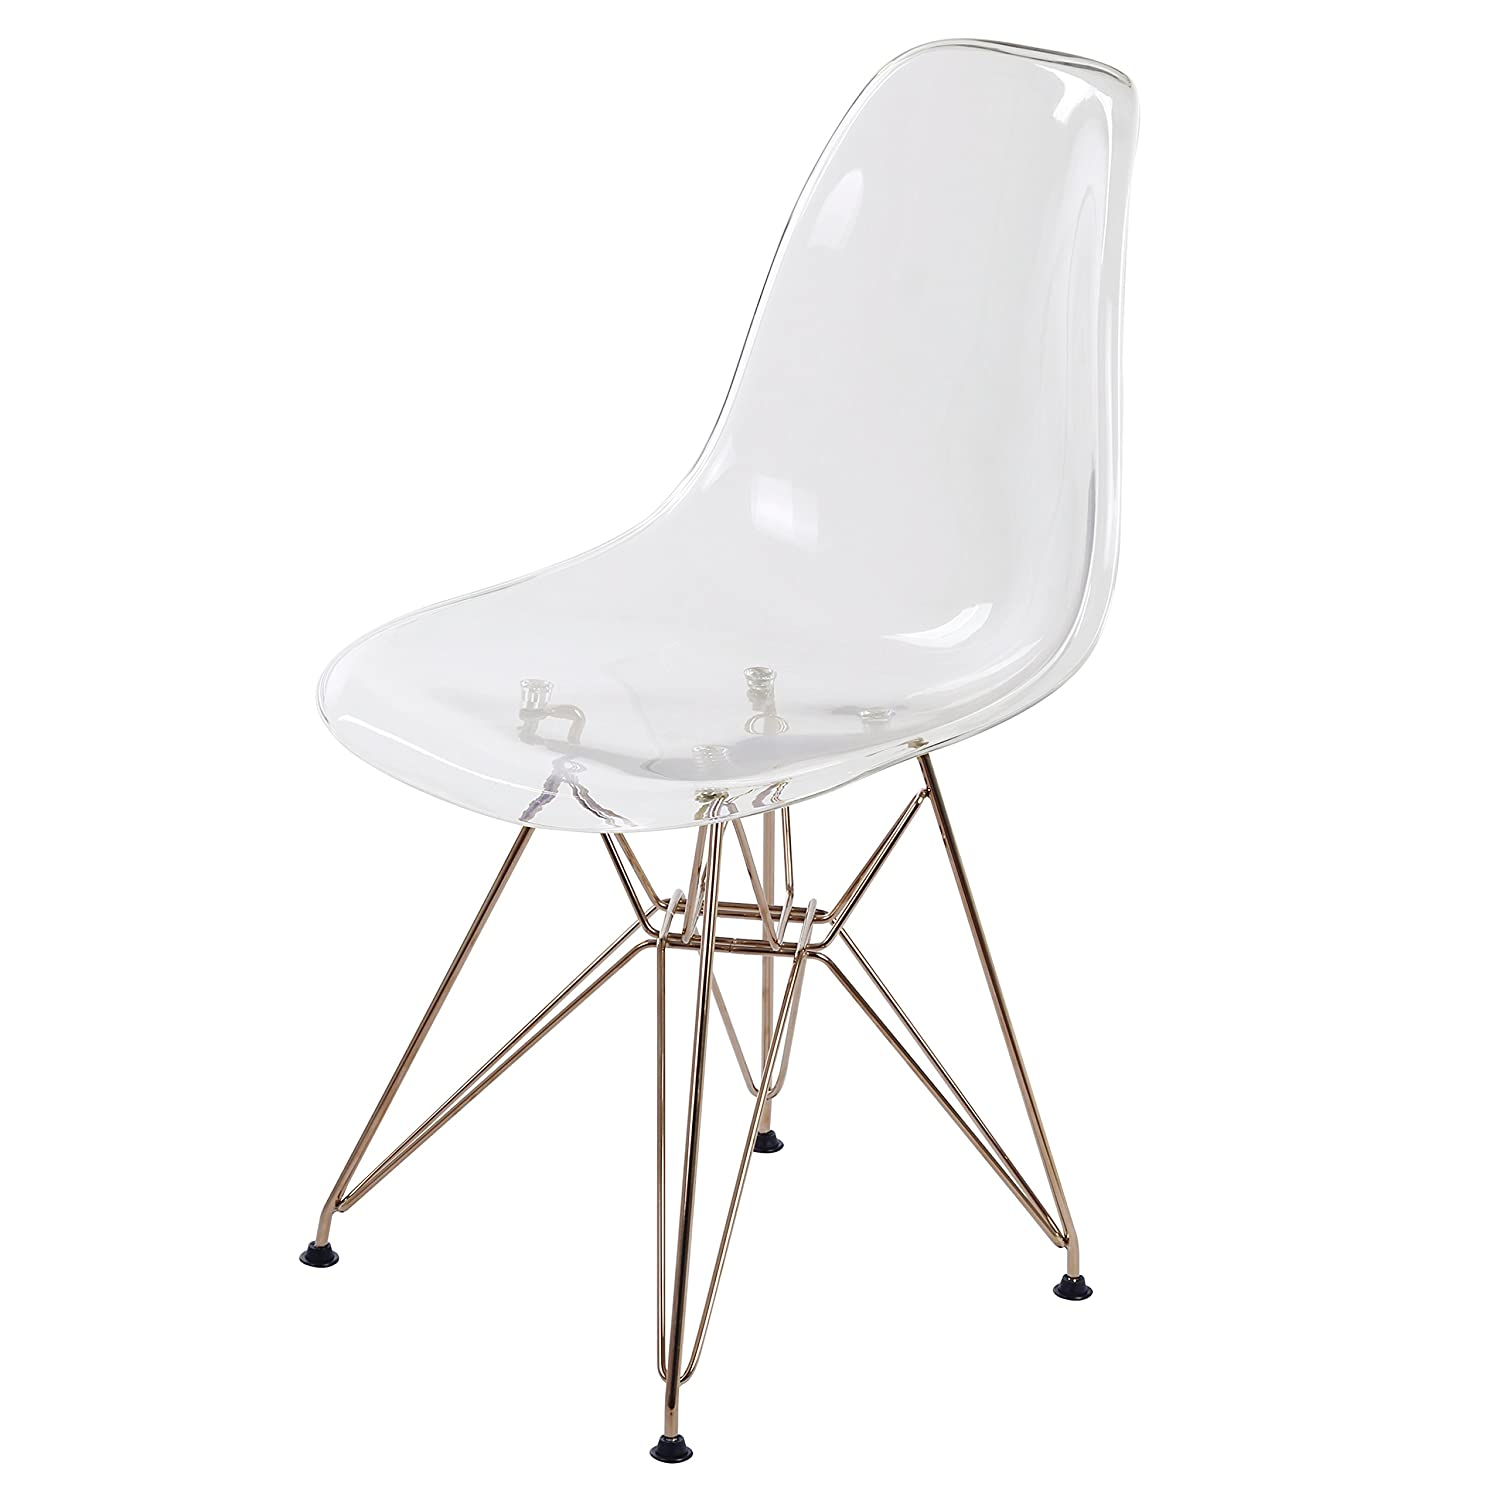 amazon new pacific direct 6100028 tc allen modern plastic chair 50s Style Homes amazon new pacific direct 6100028 tc allen modern plastic chair set of 4 furniture transparent crystal kitchen dining